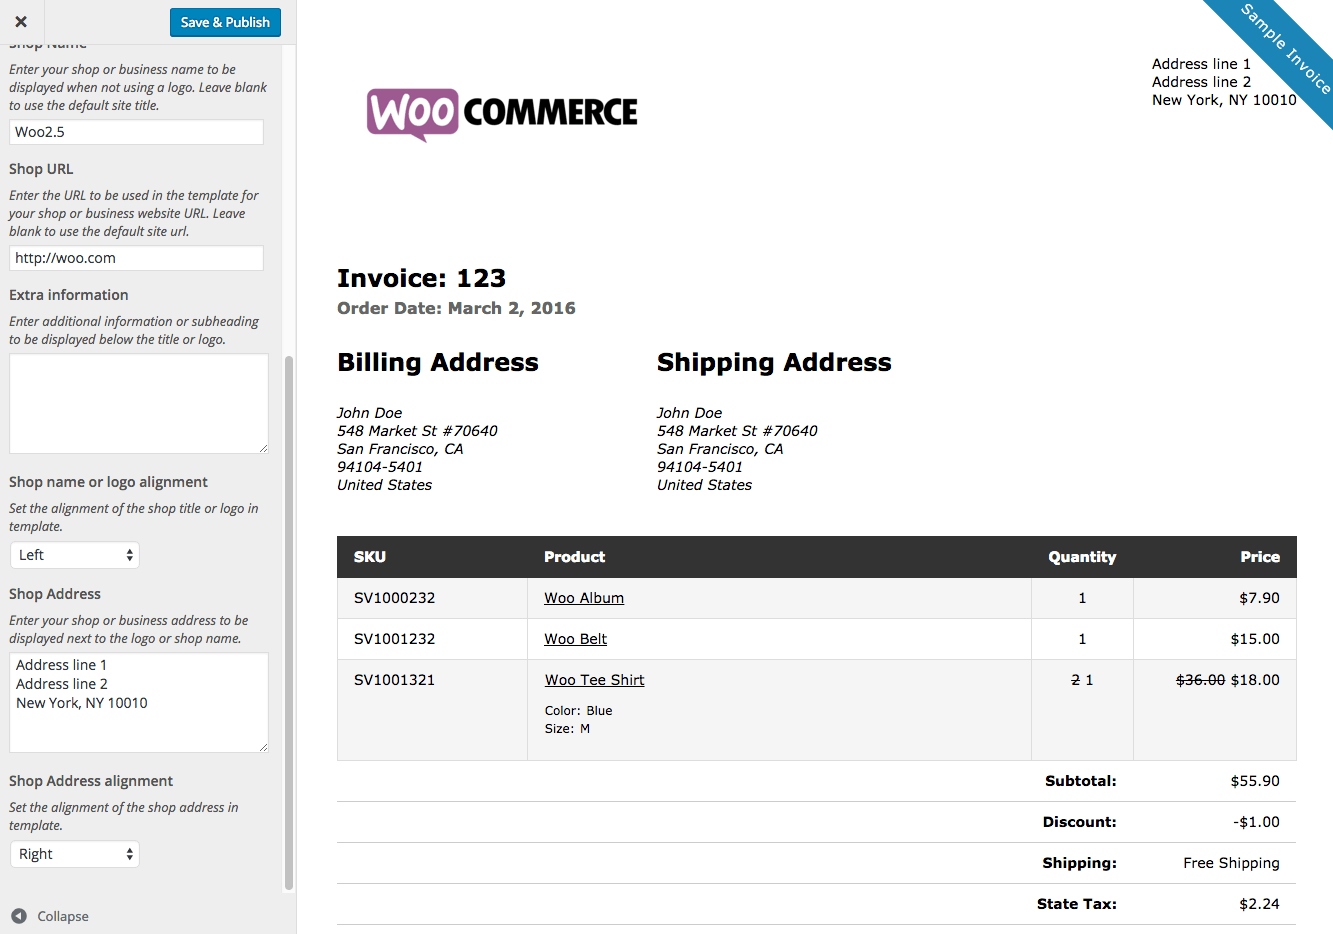 Howcanigettallerus  Pleasant Woocommerce Print Invoices Amp Packing Lists  Woocommerce Docs With Glamorous Woocommerce Print Invoices  Packing Lists Customizer With Beauteous What Is Depository Receipt Also Ringgo Parking Receipts In Addition Acknowledgement Receipts And Receipting Process As Well As Buy Receipts Online Additionally Android Receipt Tracker From Docswoocommercecom With Howcanigettallerus  Glamorous Woocommerce Print Invoices Amp Packing Lists  Woocommerce Docs With Beauteous Woocommerce Print Invoices  Packing Lists Customizer And Pleasant What Is Depository Receipt Also Ringgo Parking Receipts In Addition Acknowledgement Receipts From Docswoocommercecom